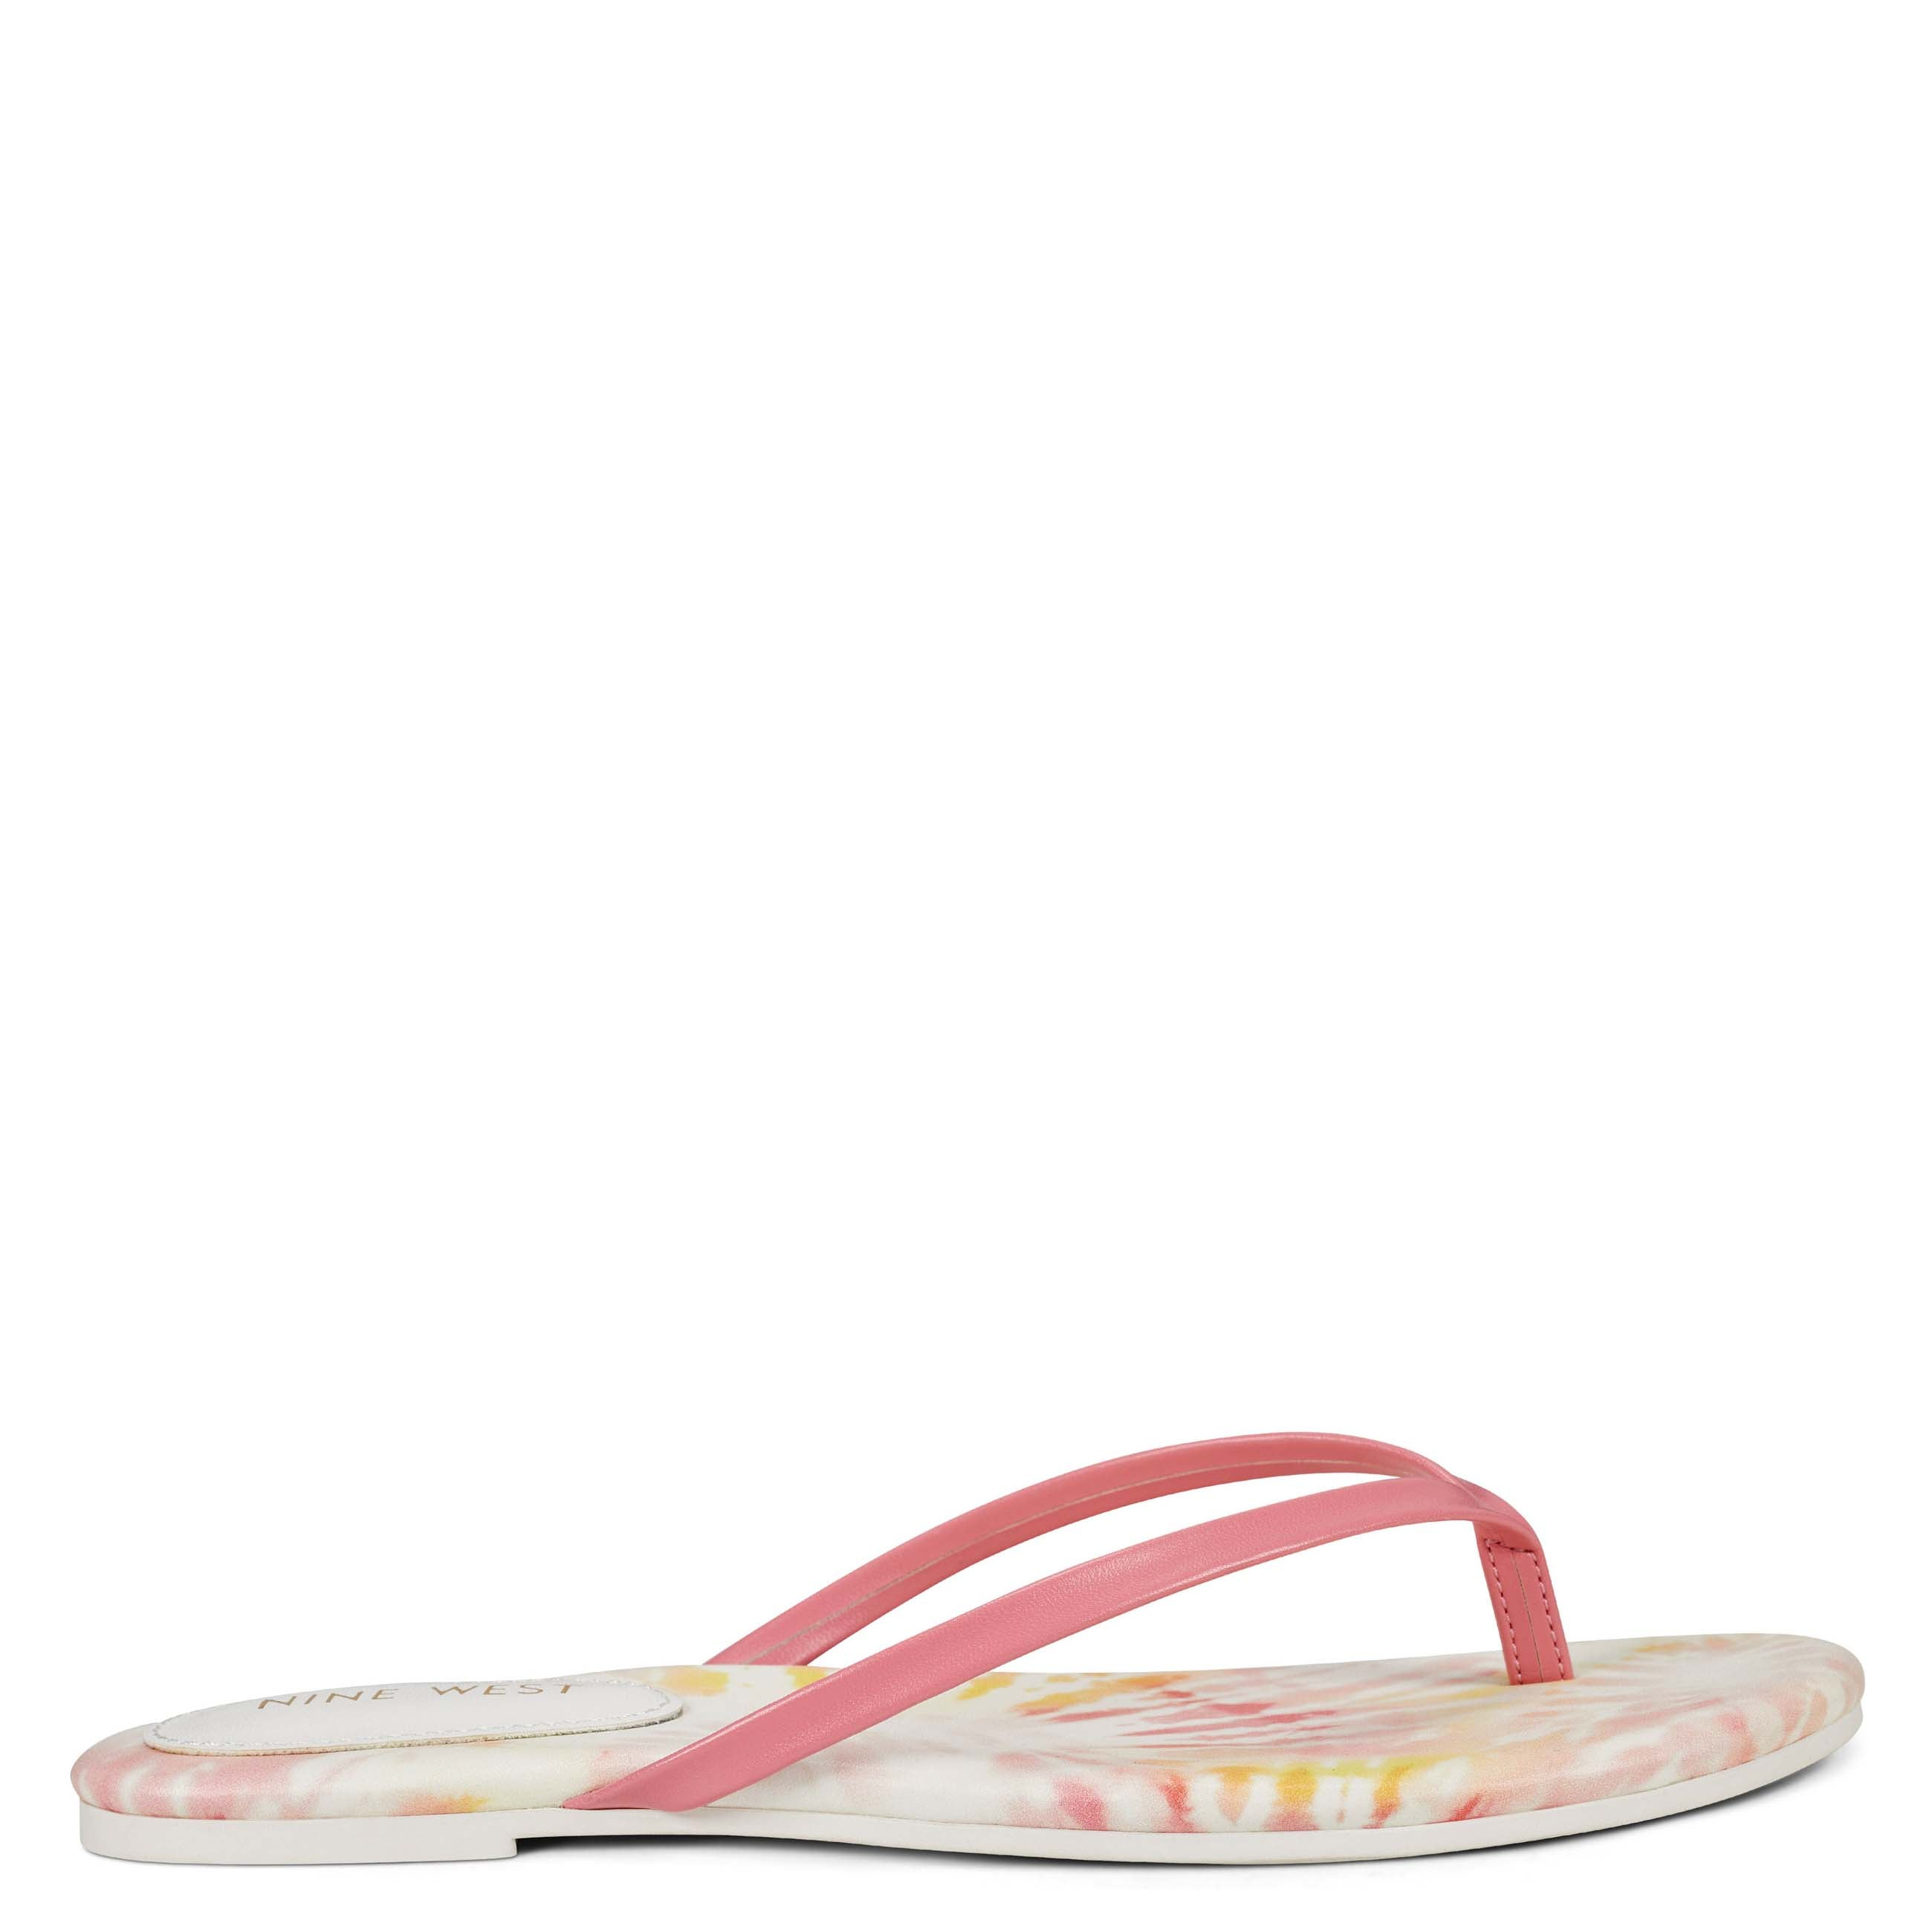 NINEWEST Bossy Flat Thong Sandals